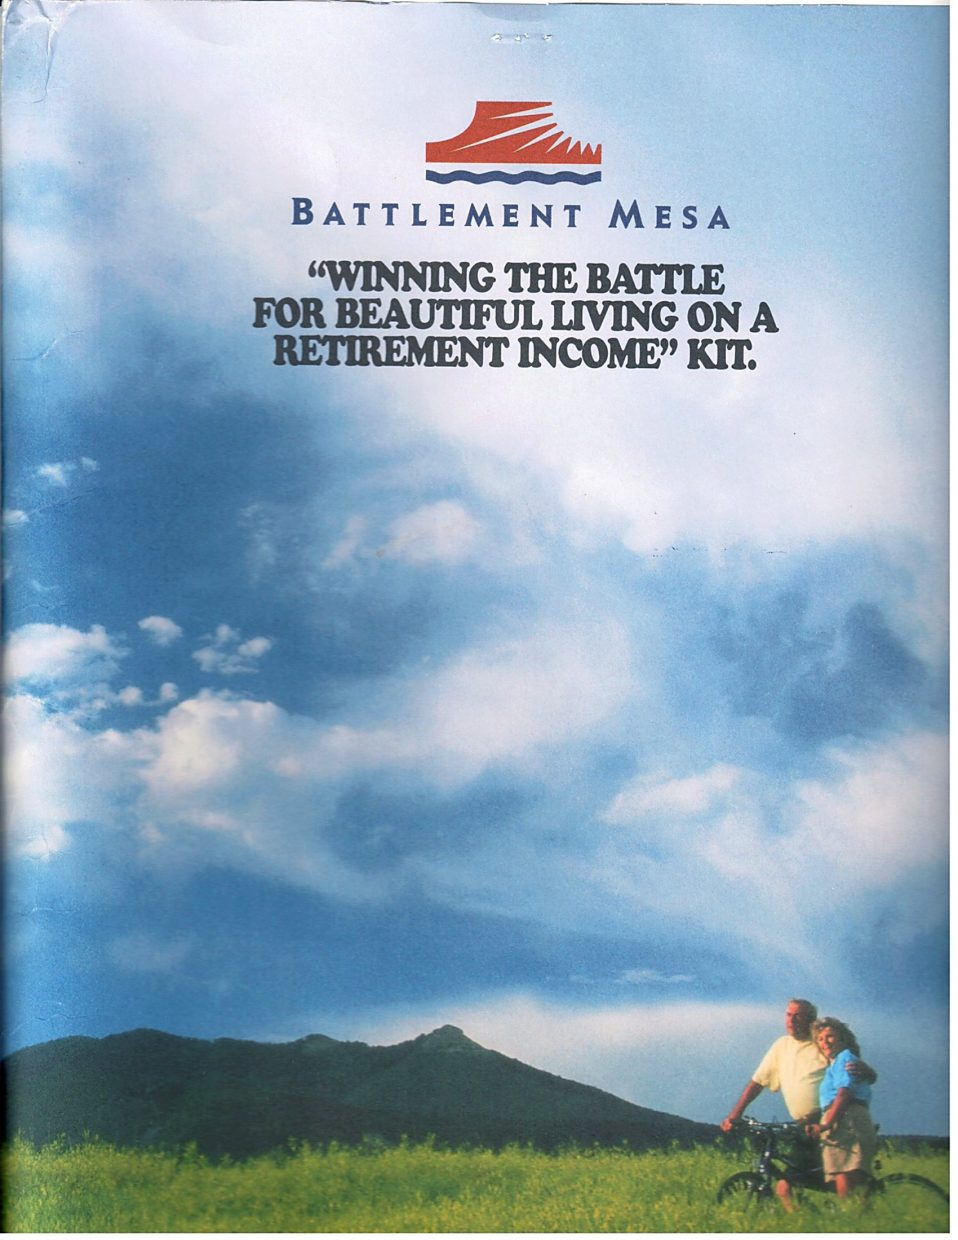 This is the cover of the brochure Bill and Eleanor Nelson got when they visited Battlement Mesa in 1997 to look at potential home sites.